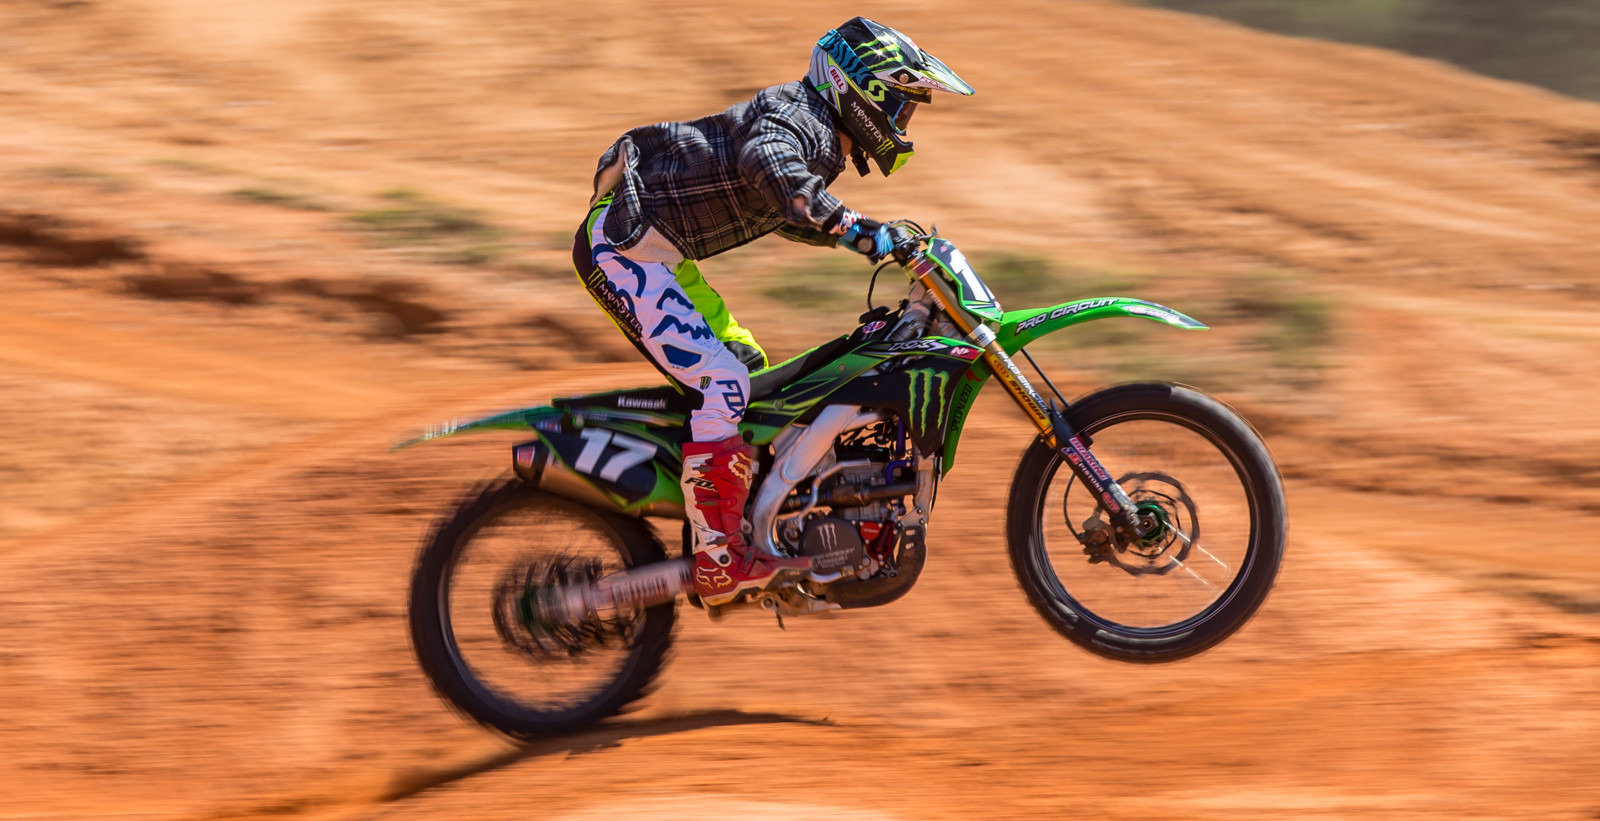 Joey Savatgy - Photo Gallery: The Nest, Goat Farm, and MTF - Motocross Pictures - Vital MX